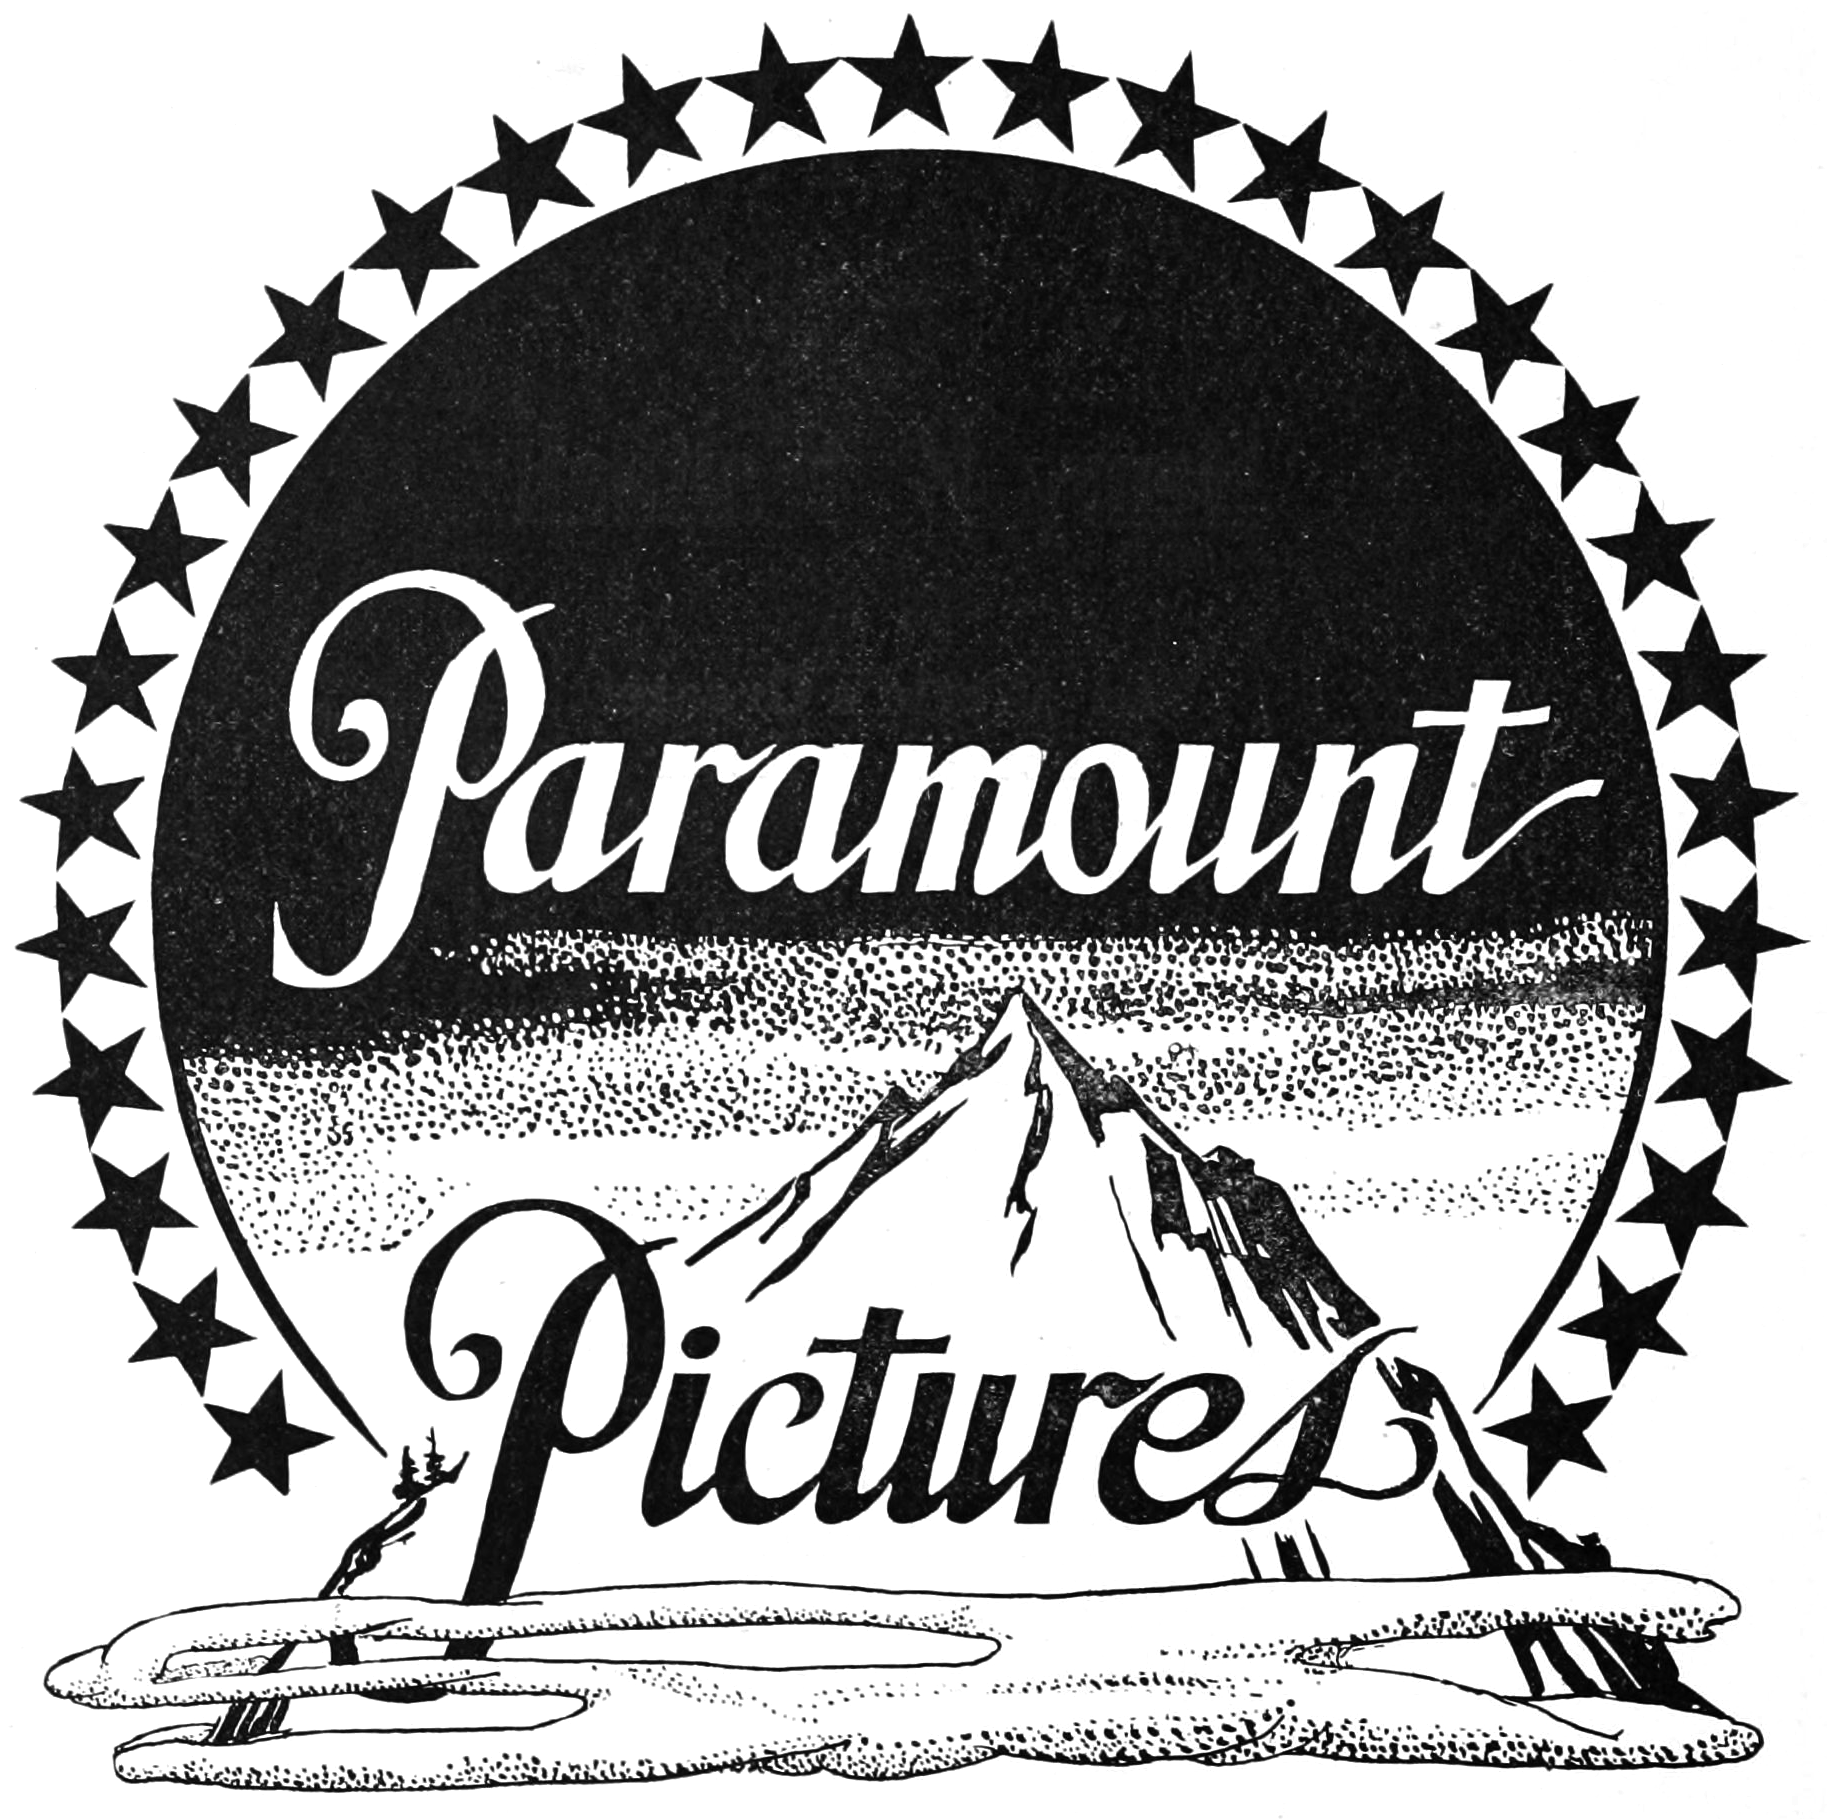 File:Paramount Pictures logo, 1915.png.